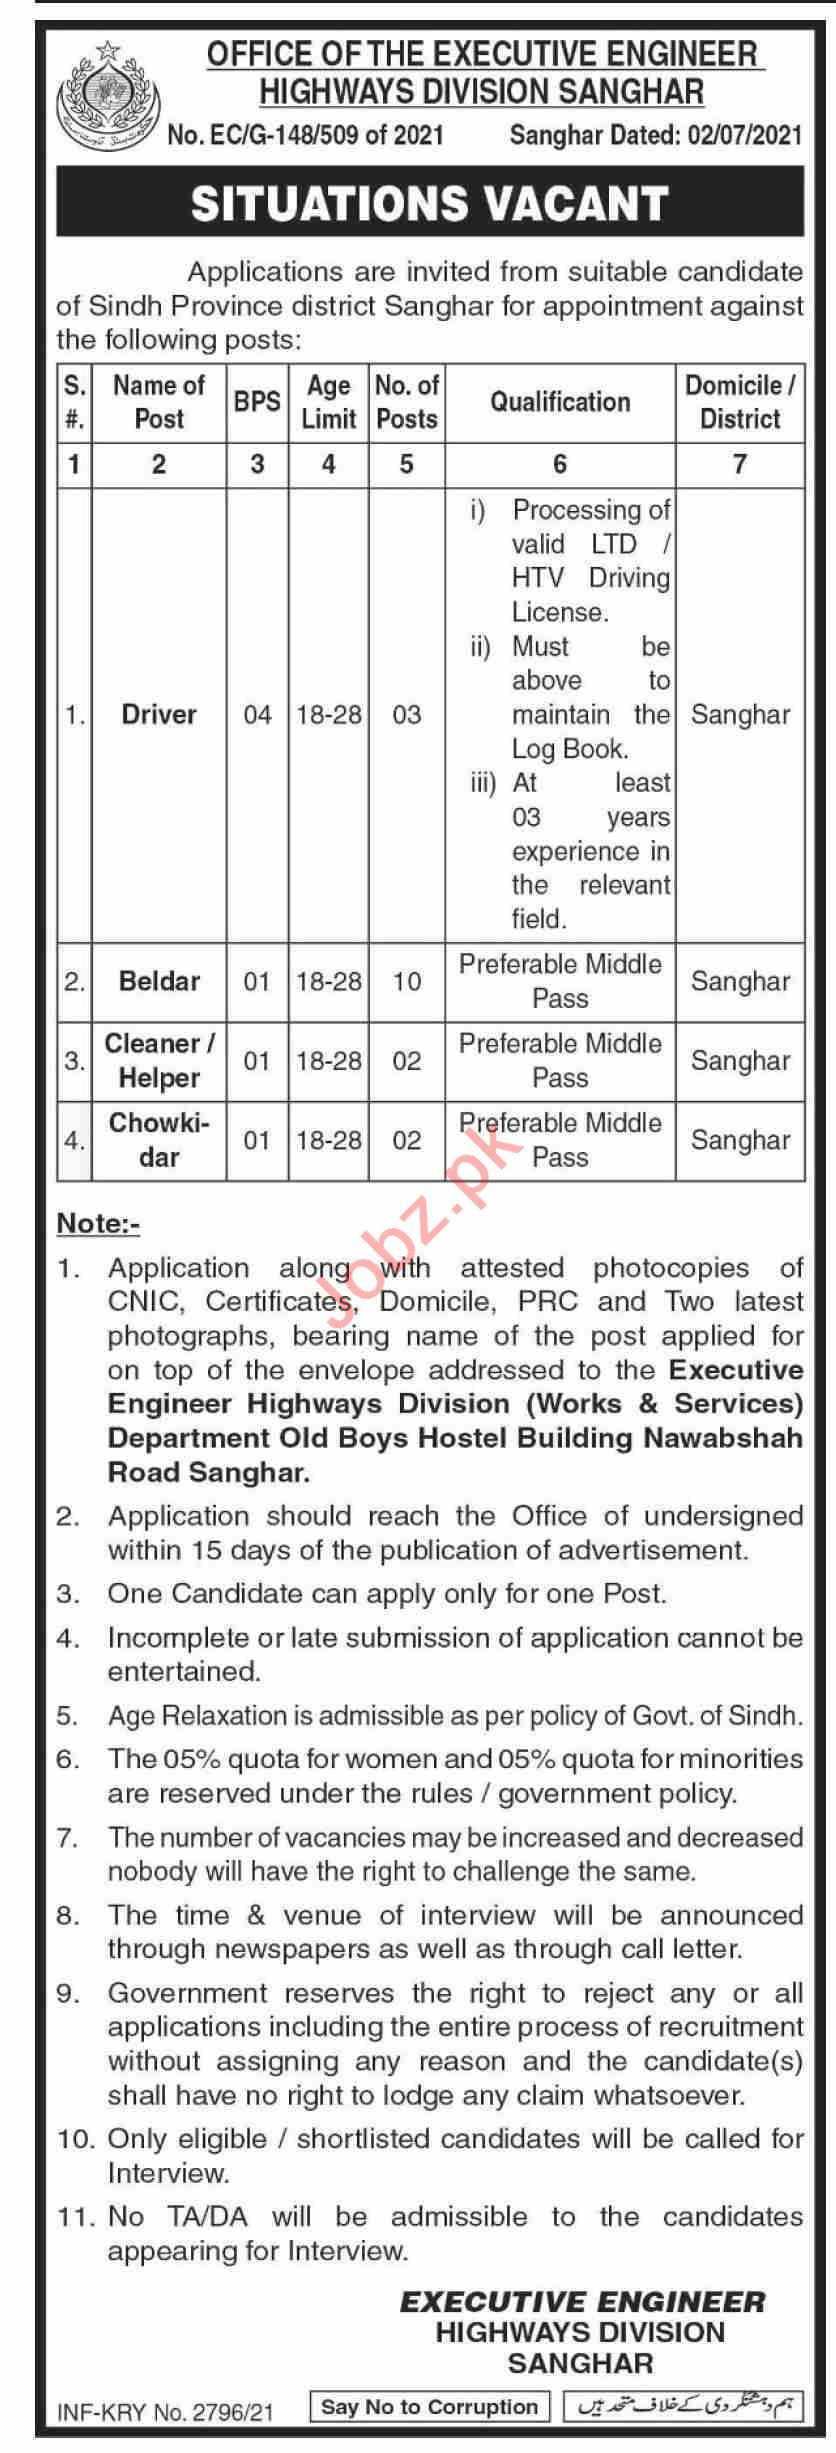 Provincial Highways Division Sanghar Jobs 2021 for Drivers